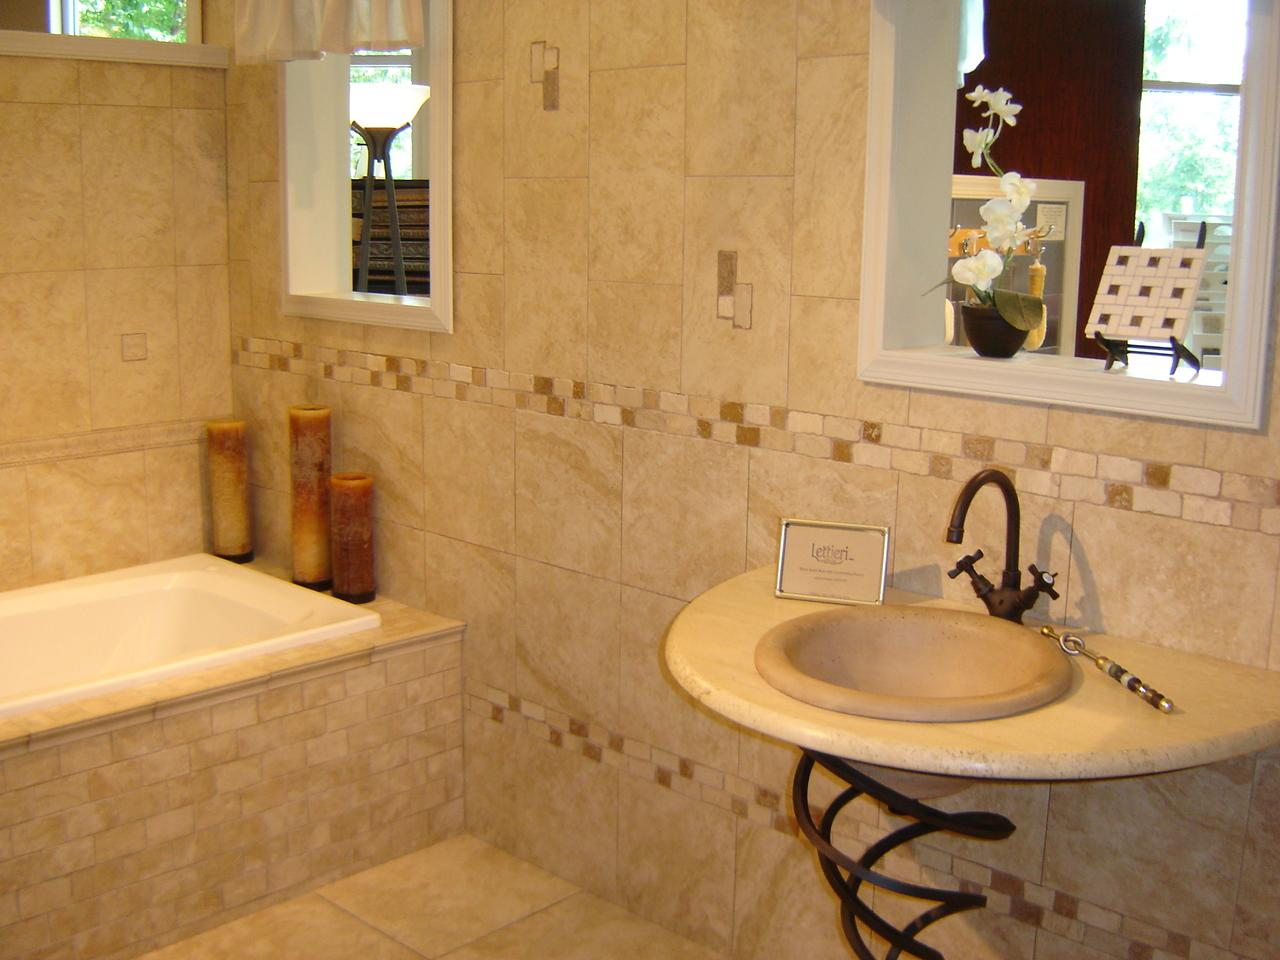 images of bathroom tile bathroom tile designs for small bathrooms large and beautiful